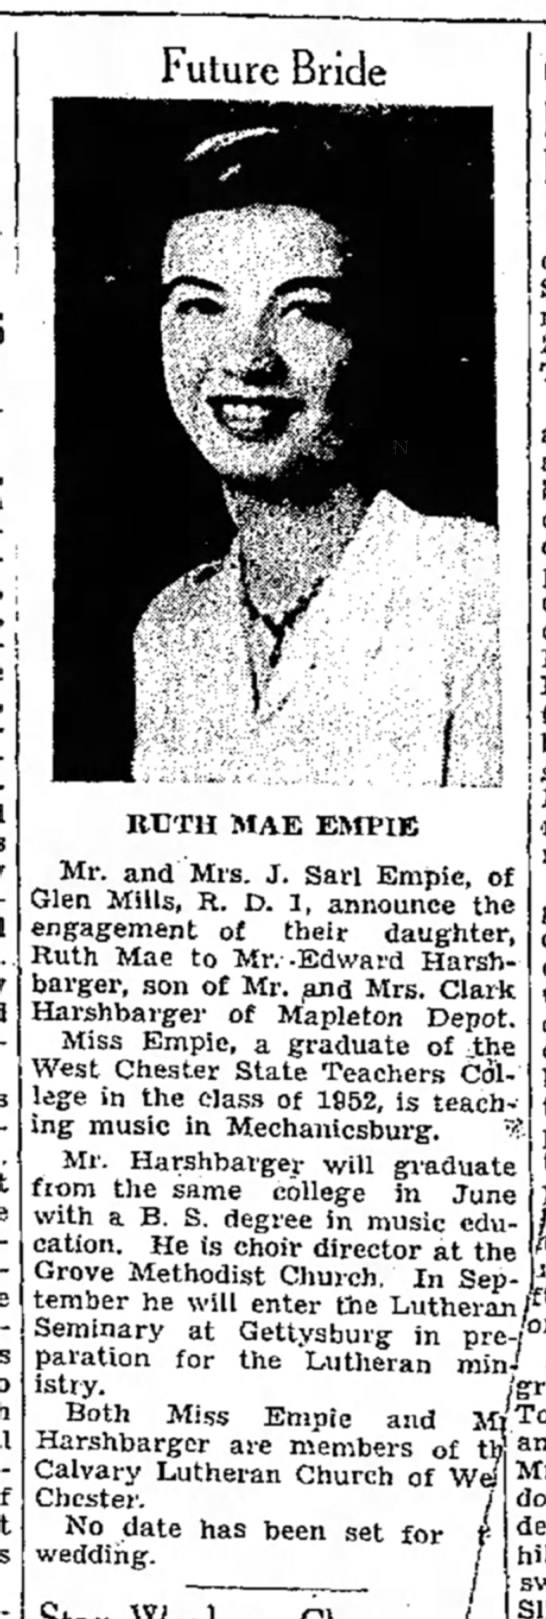 Ruth Mae Empie-engaged-TDN-p.9-23 April 1953 -